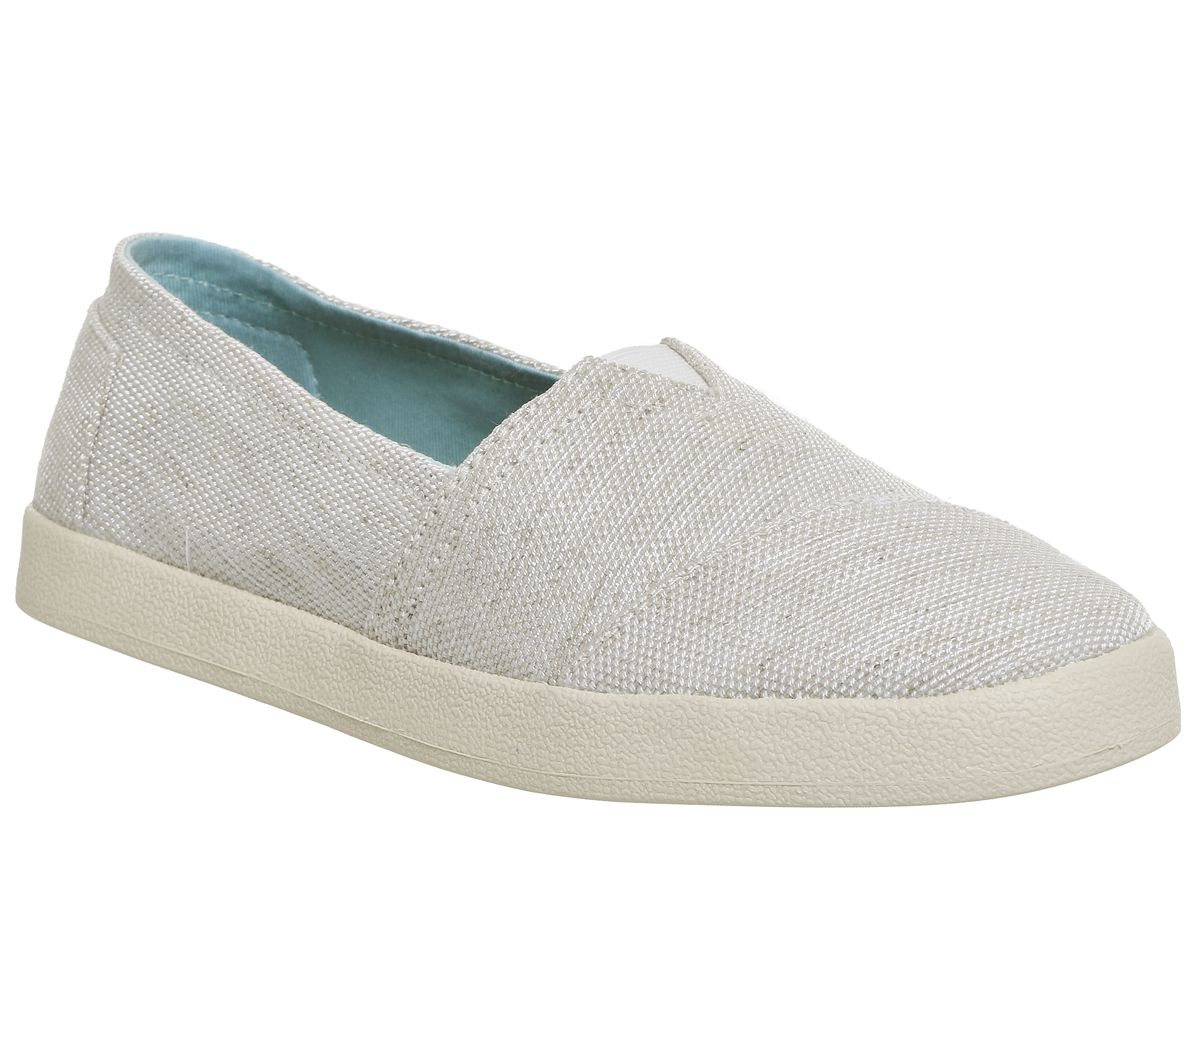 690fb5f712a4 Toms Avalon Sneakers Natural Yarn Dye - Flats